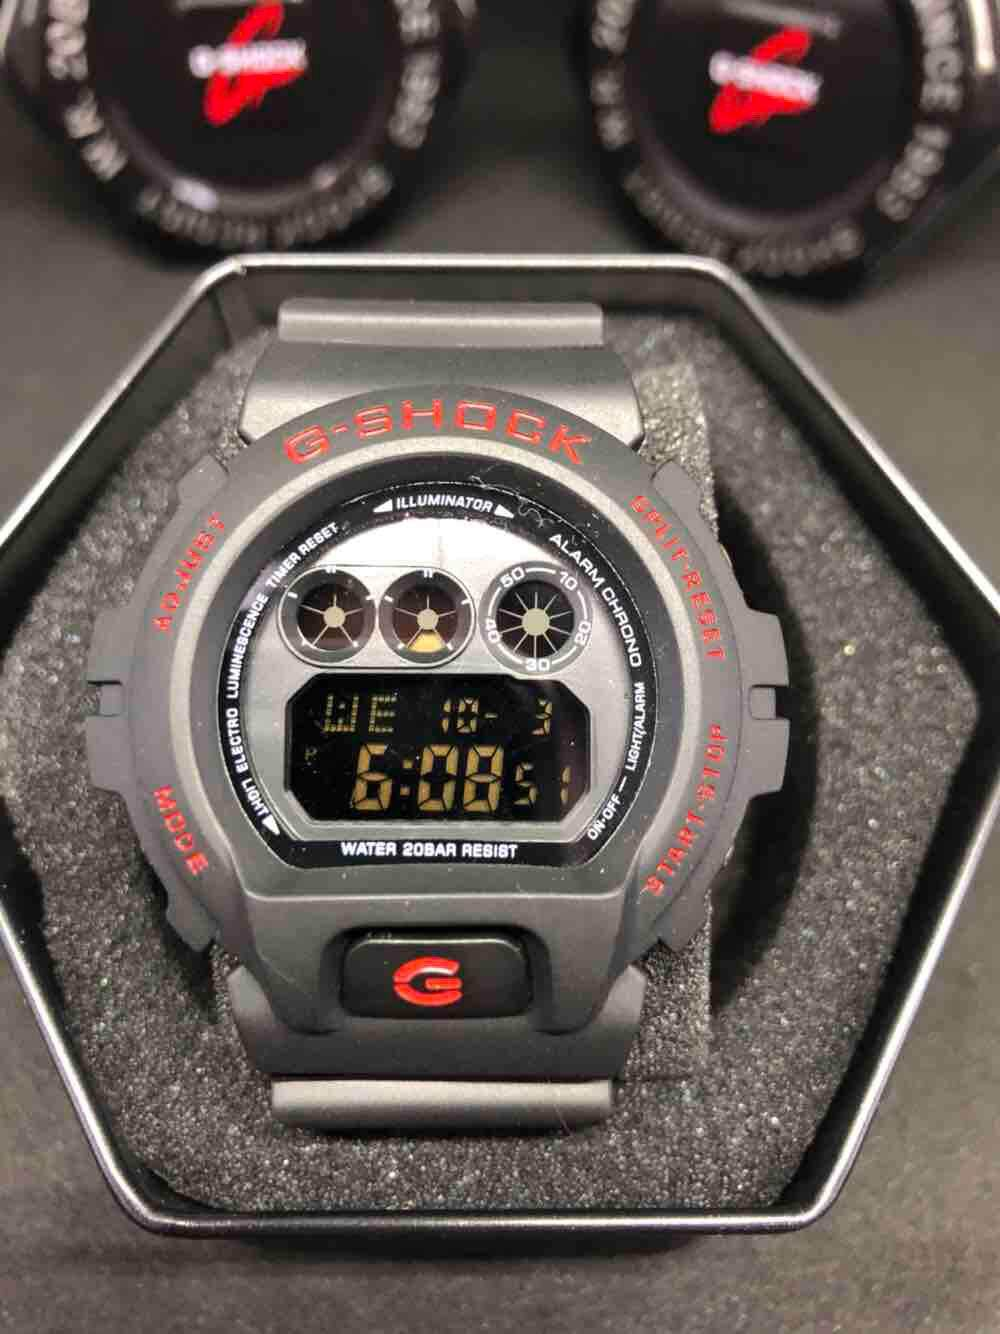 Casio Products For The Best Price In Malaysia G Shock Series Ga 100 Jam Tangan Pria Strap Resin Style Dw6900 Classic Viral